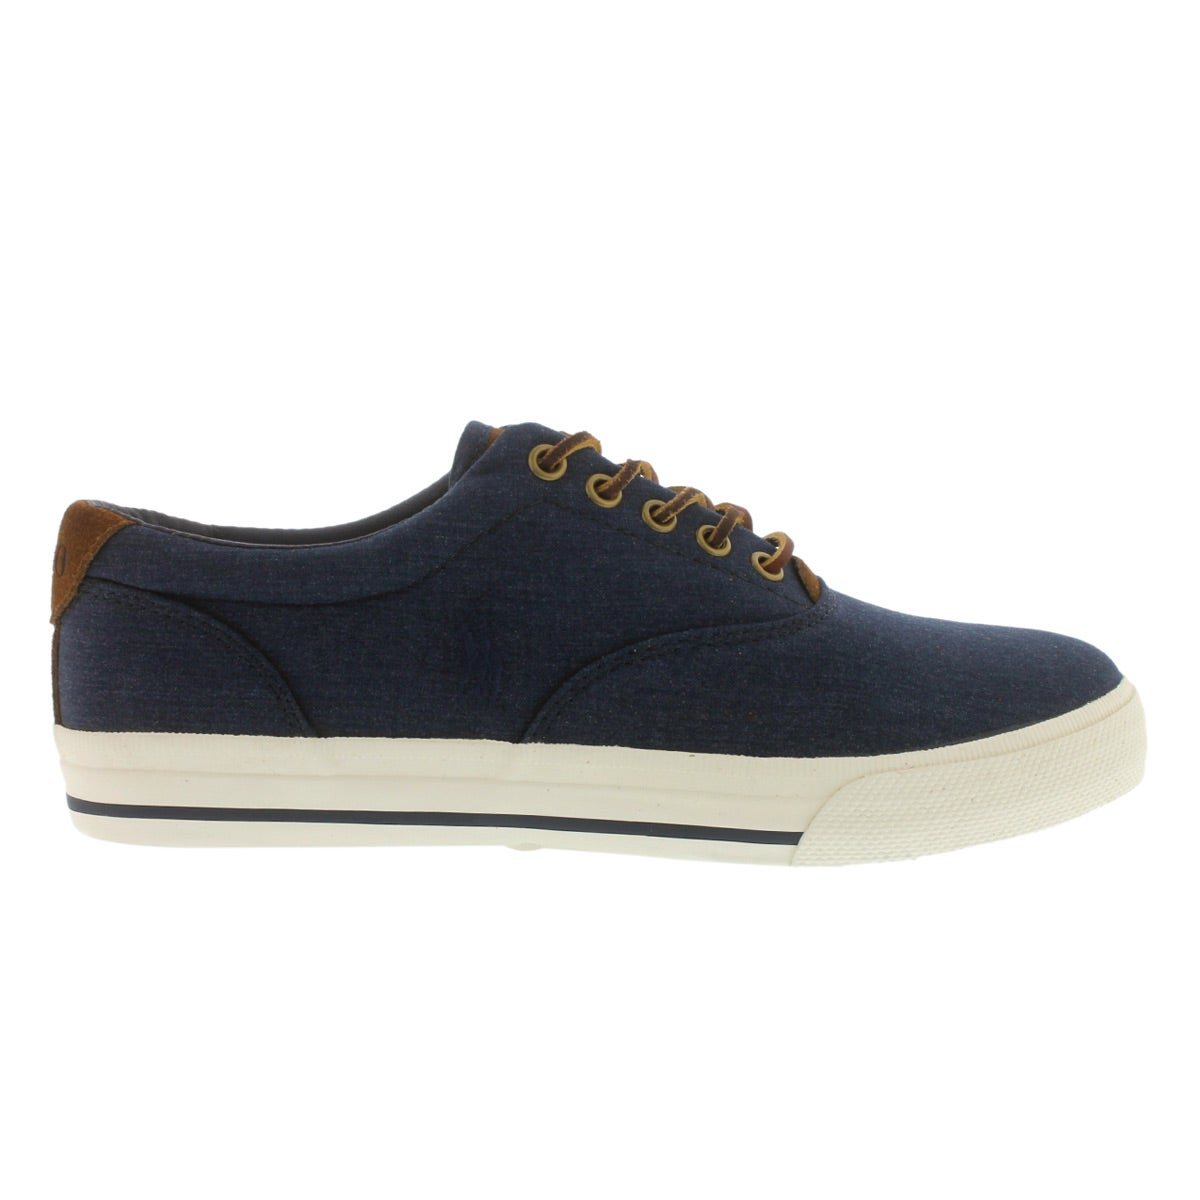 Mns Vaughn navy heather ripstop sneaker